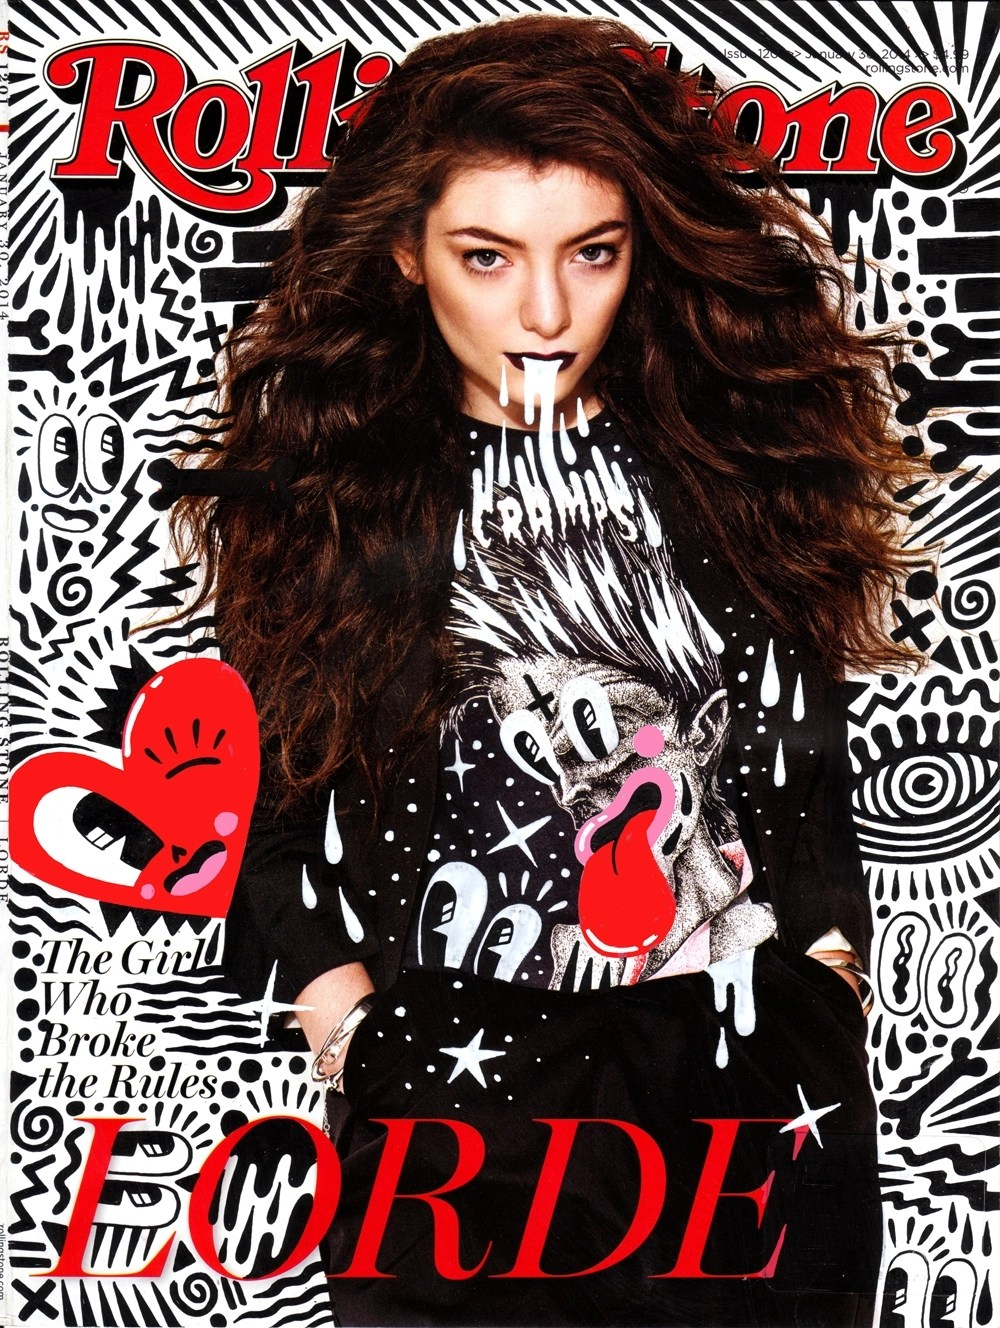 Cover Lorde Stones Rolling